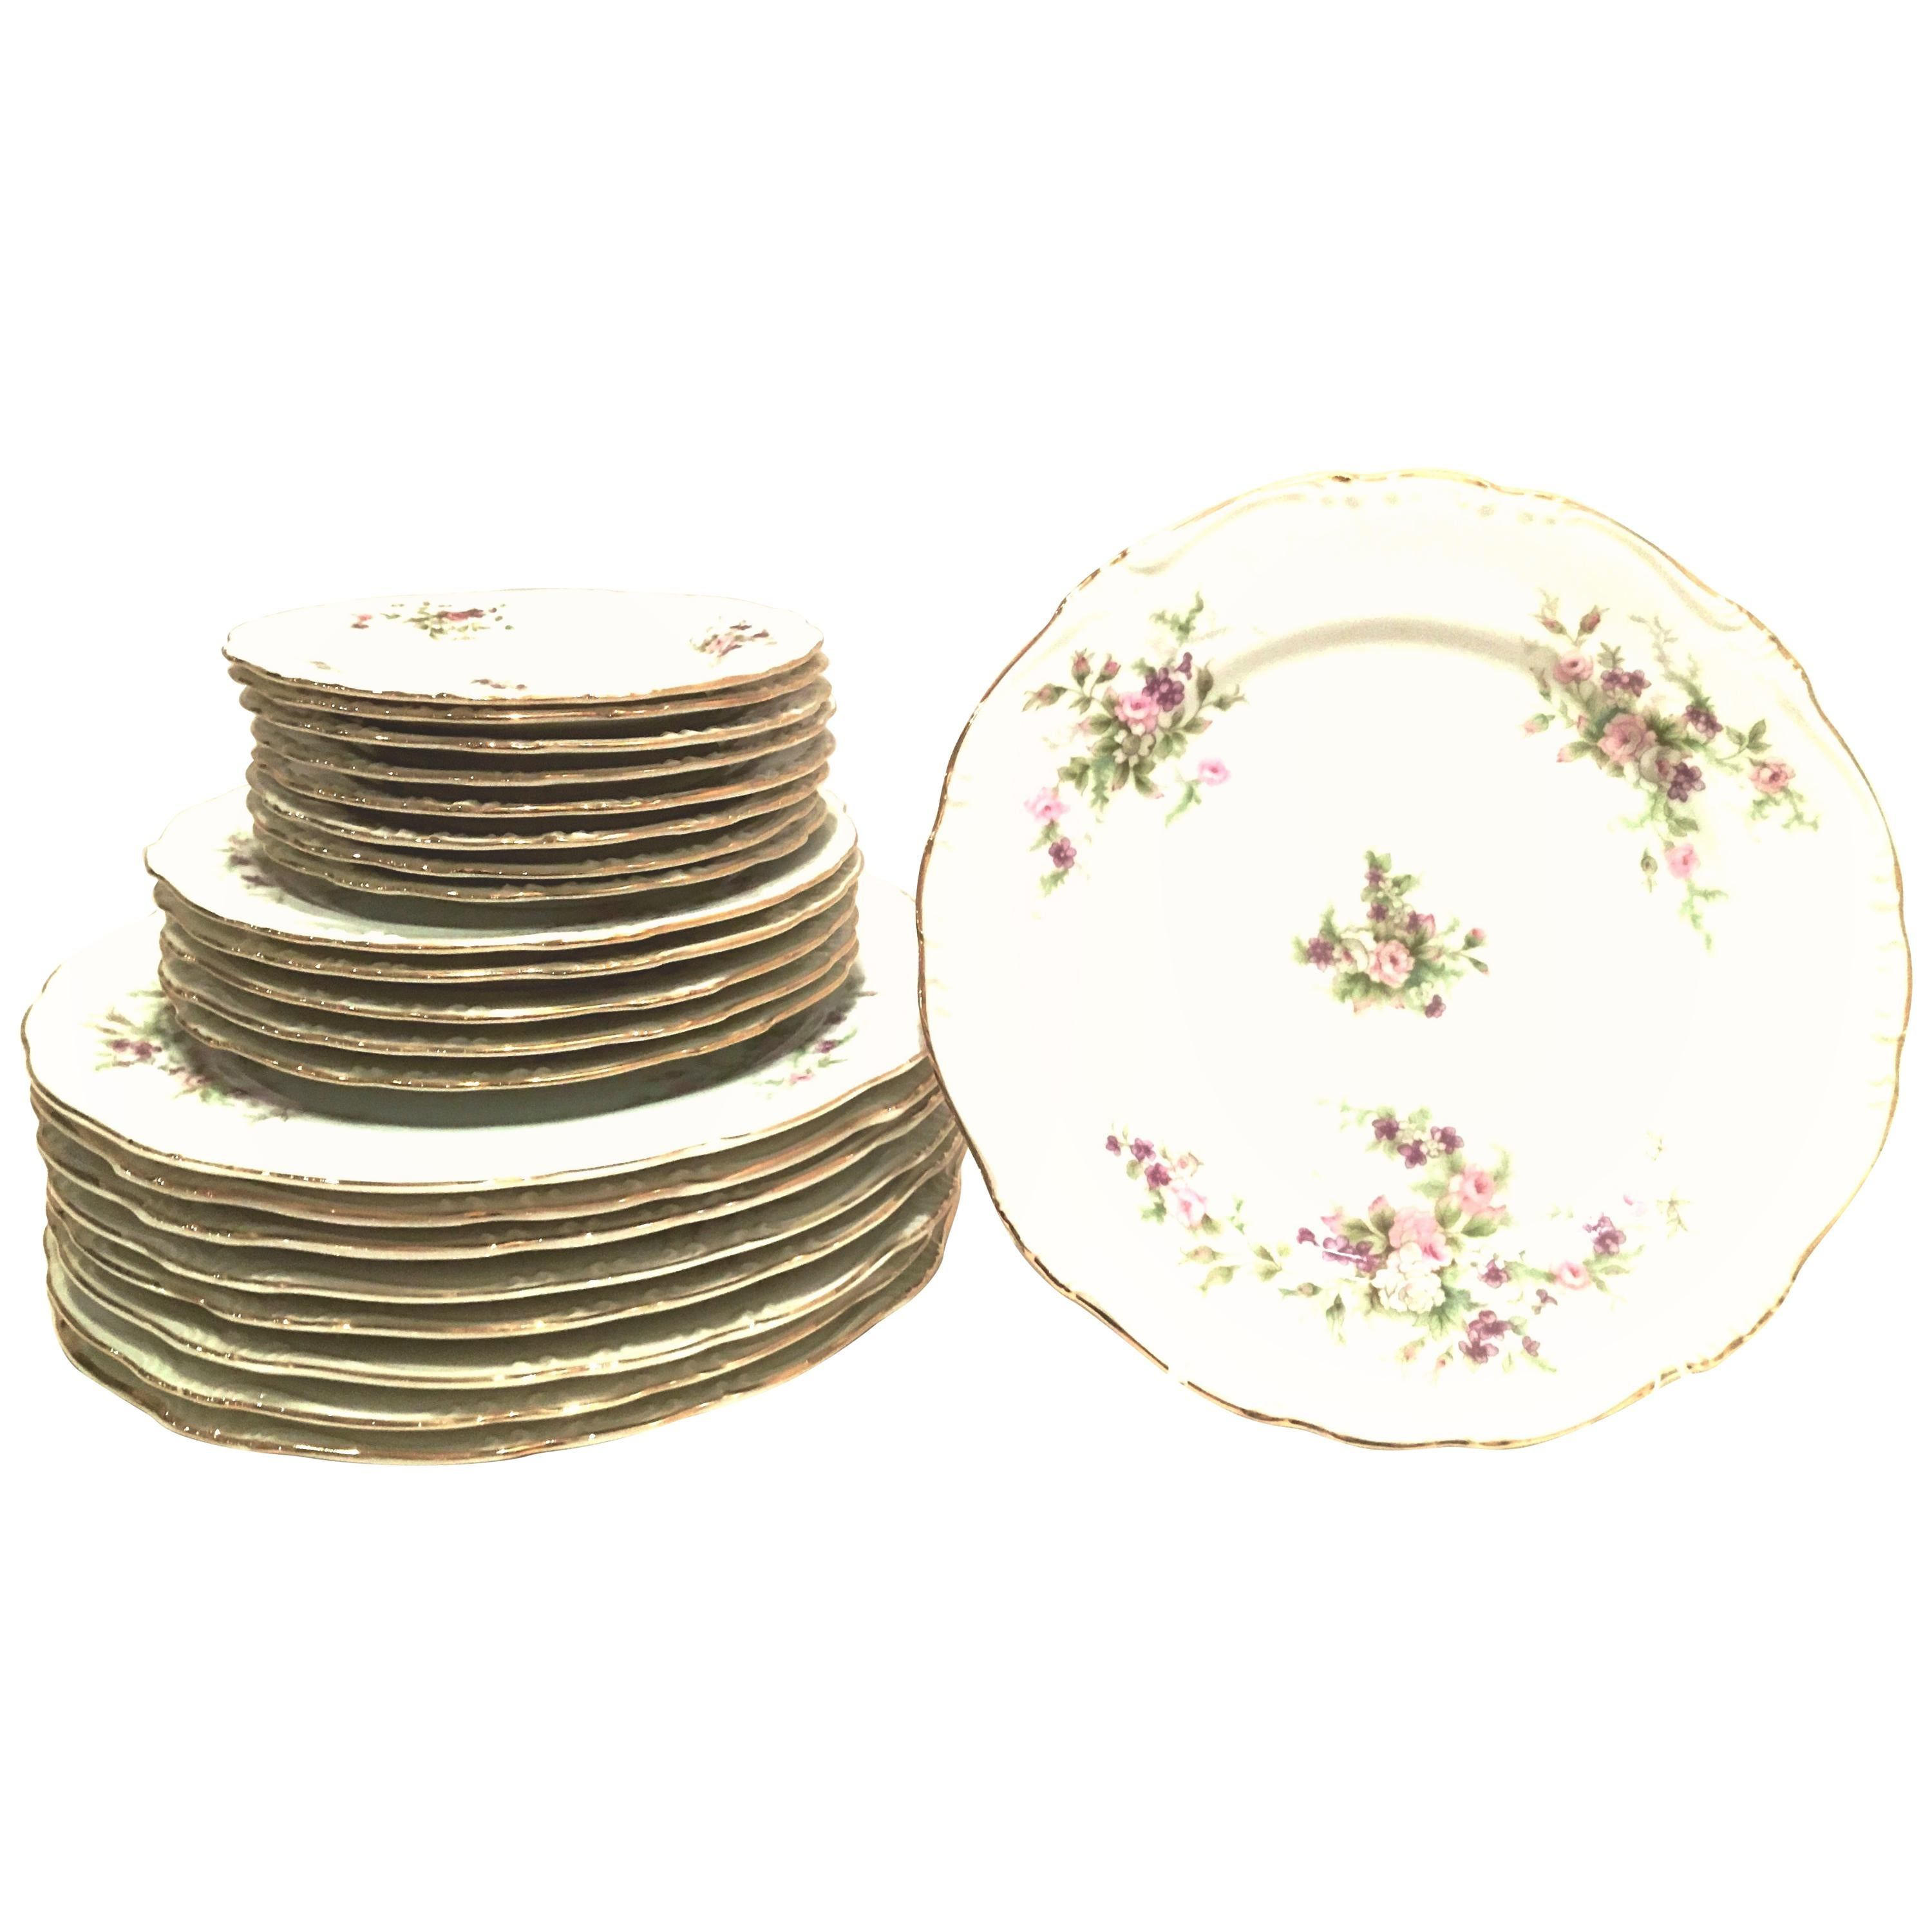 Mid-20th Century Japanese Porcelain and 22-Karat Gold Dinnerware S/22 by, Japan